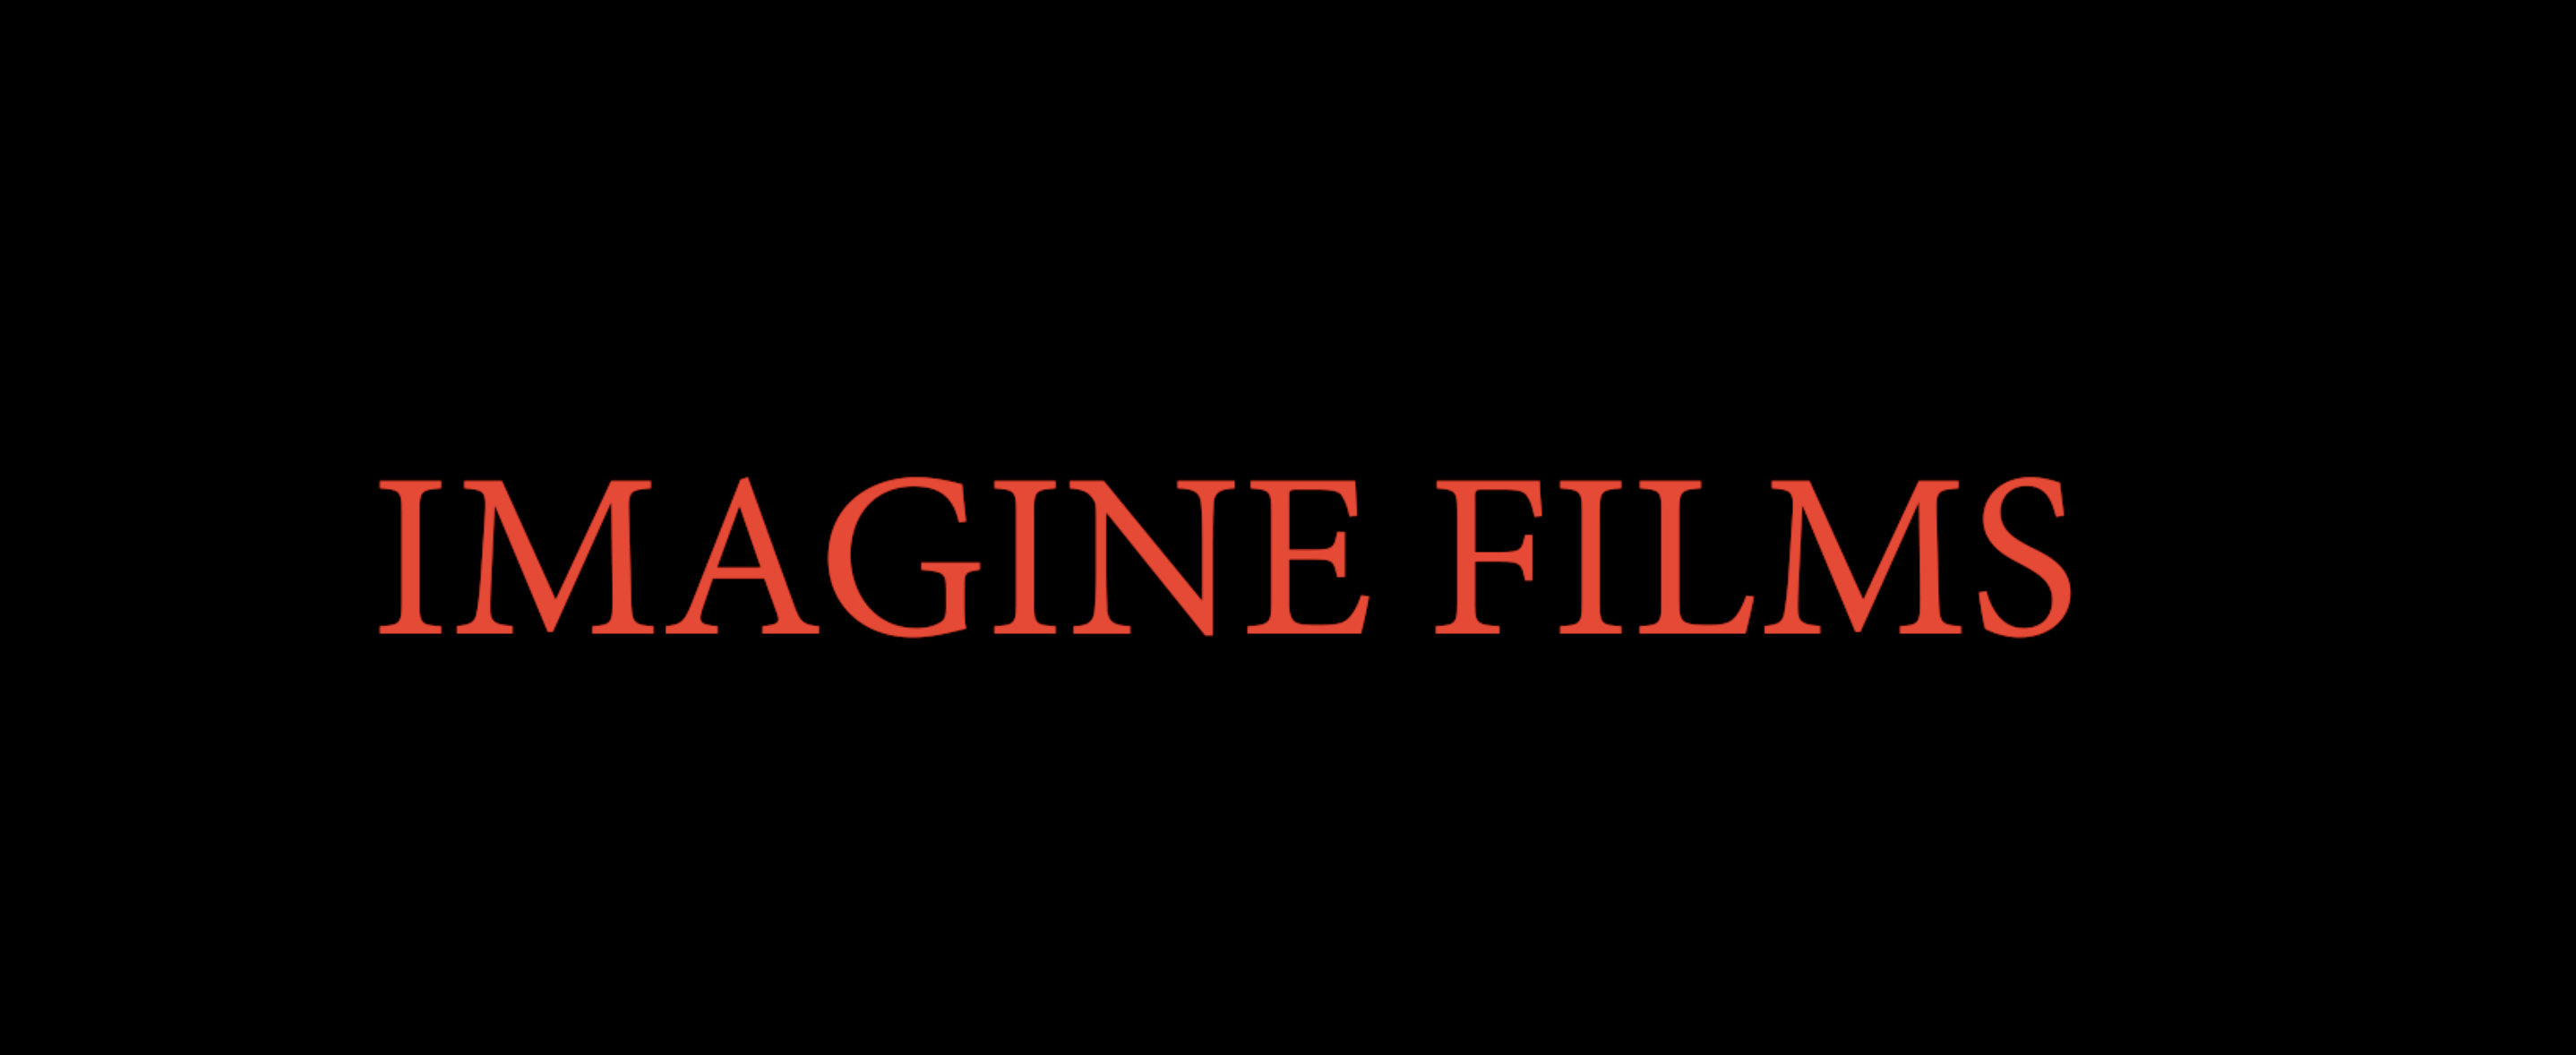 imagine films